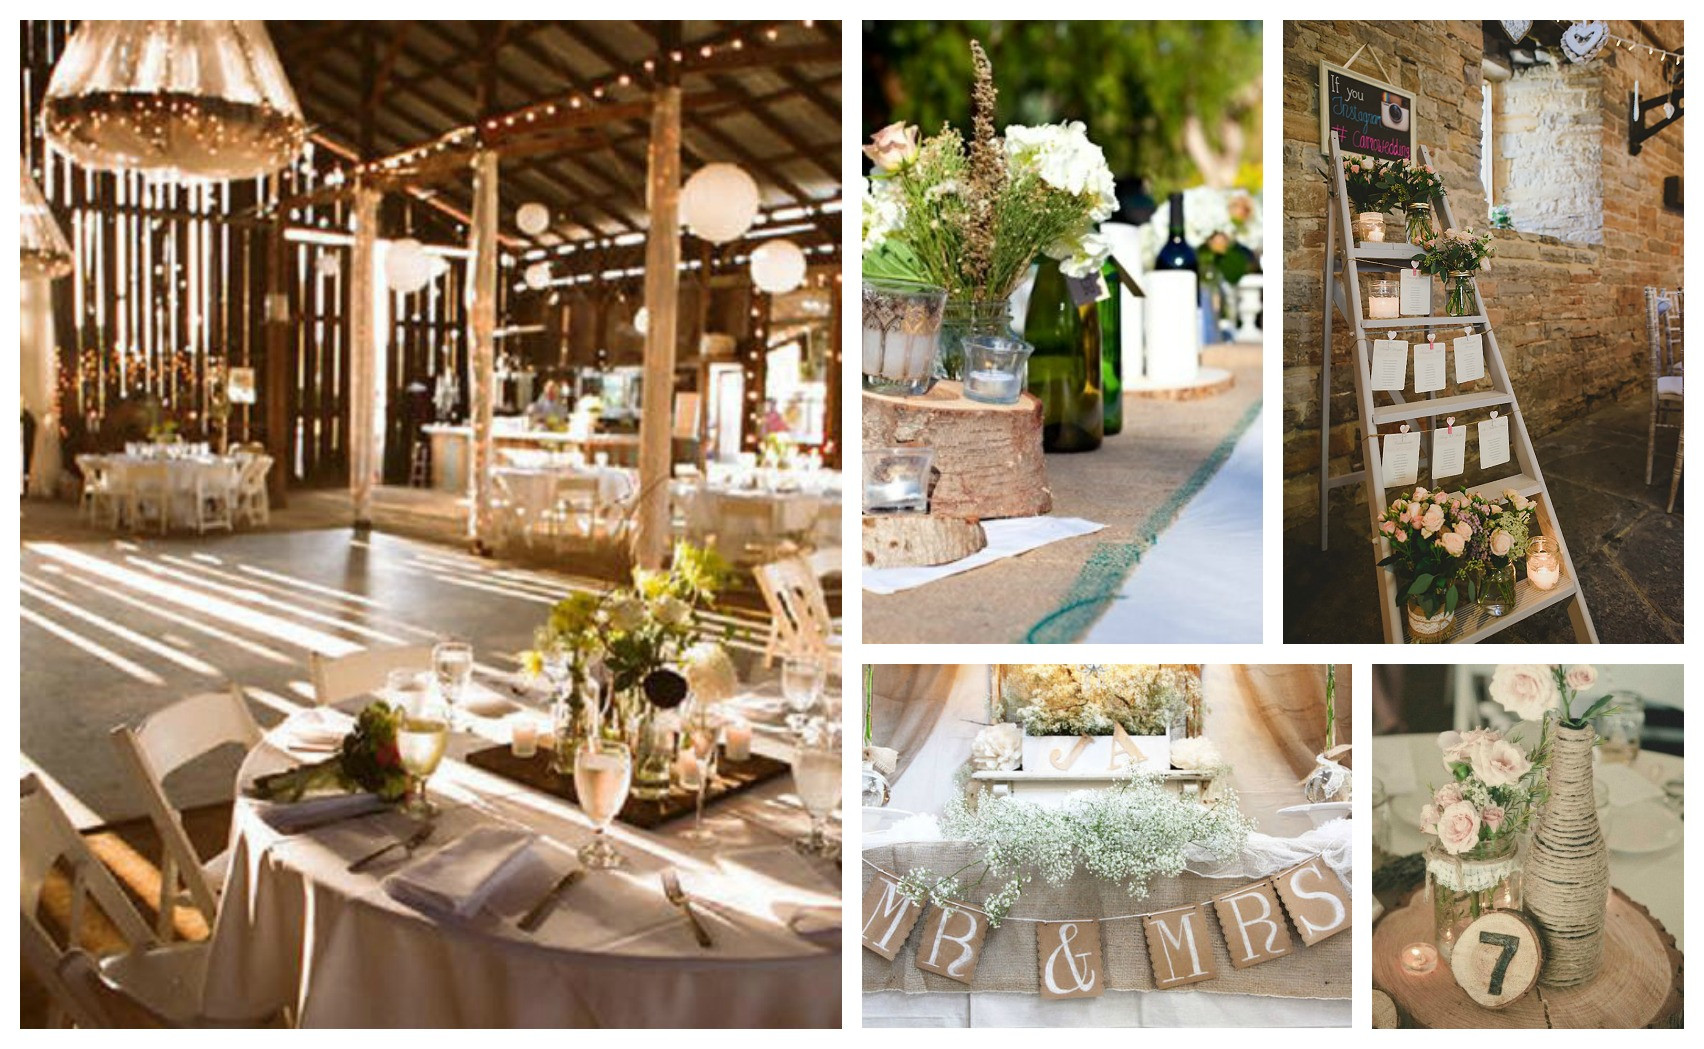 Best ideas about DIY Rustic Wedding Decorations . Save or Pin Awesome DIY Rustic Wedding Decorations That Will Warm Your Now.